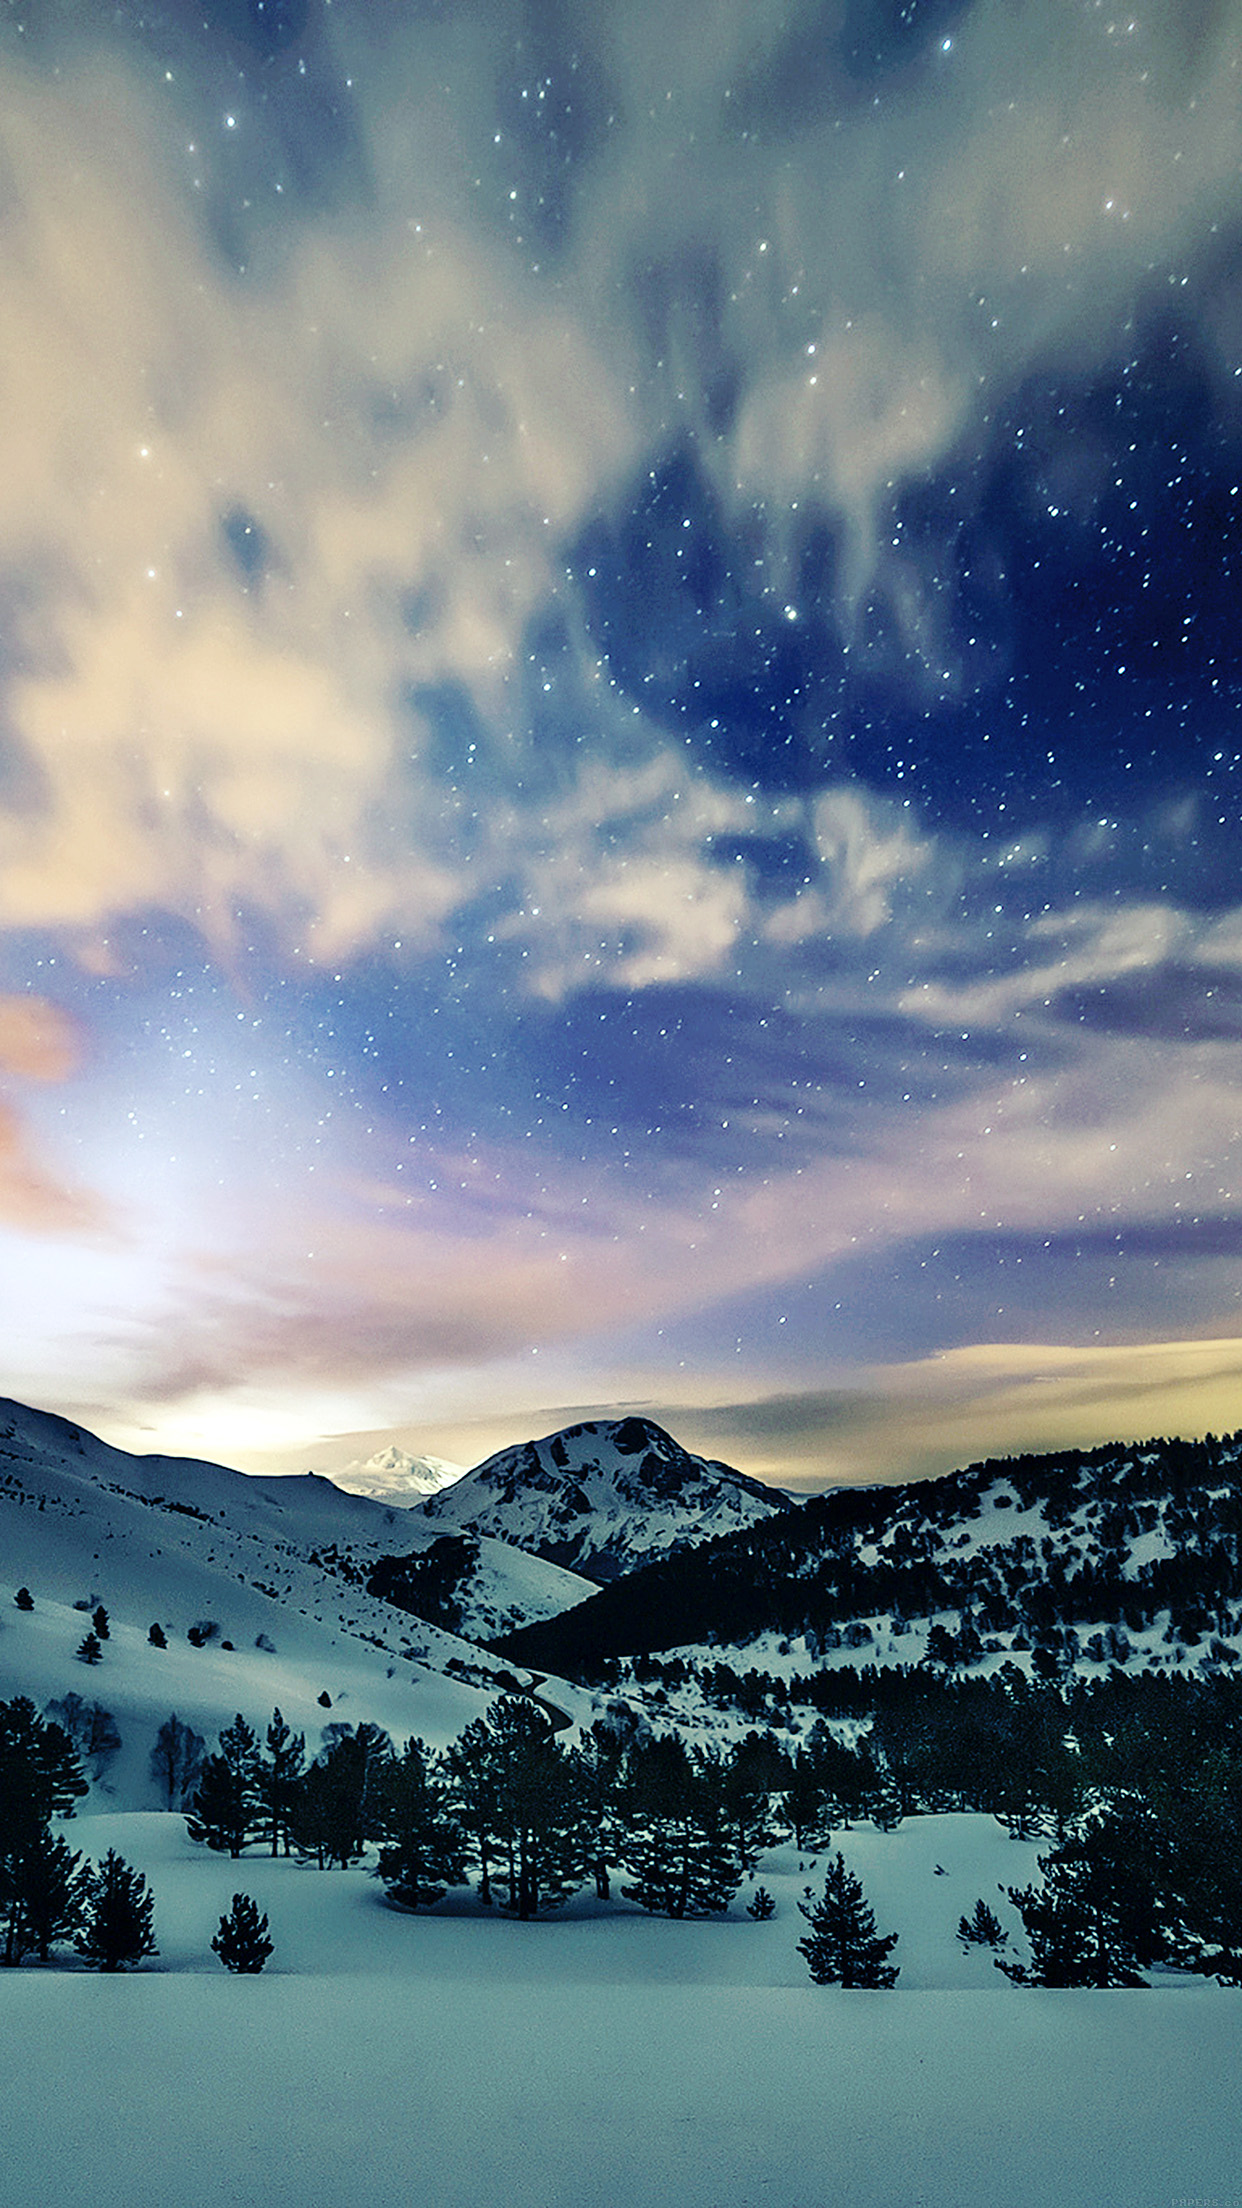 Car Wallpaper Samsung Mk79 Aurora Star Sky Snow Night Mountain Winter Nature